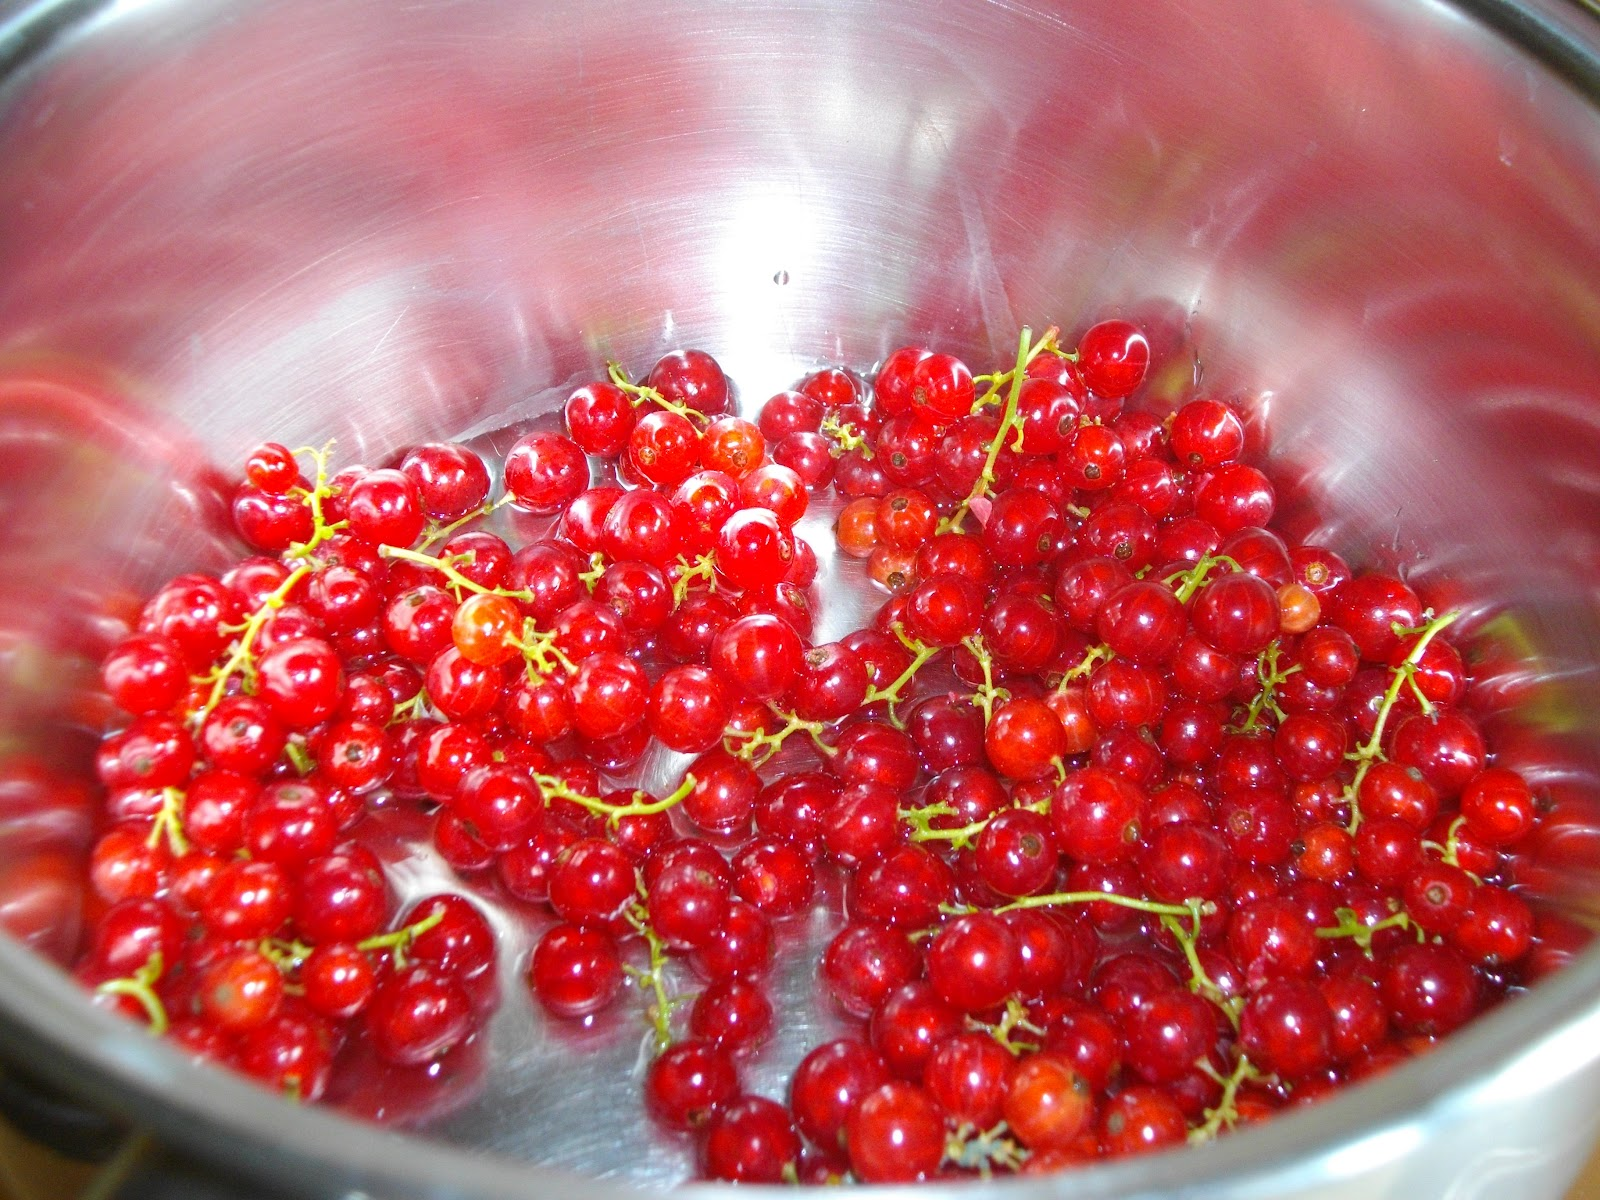 ... -up Garden: How to Make Red Currant Jelly...plus two summer recipes